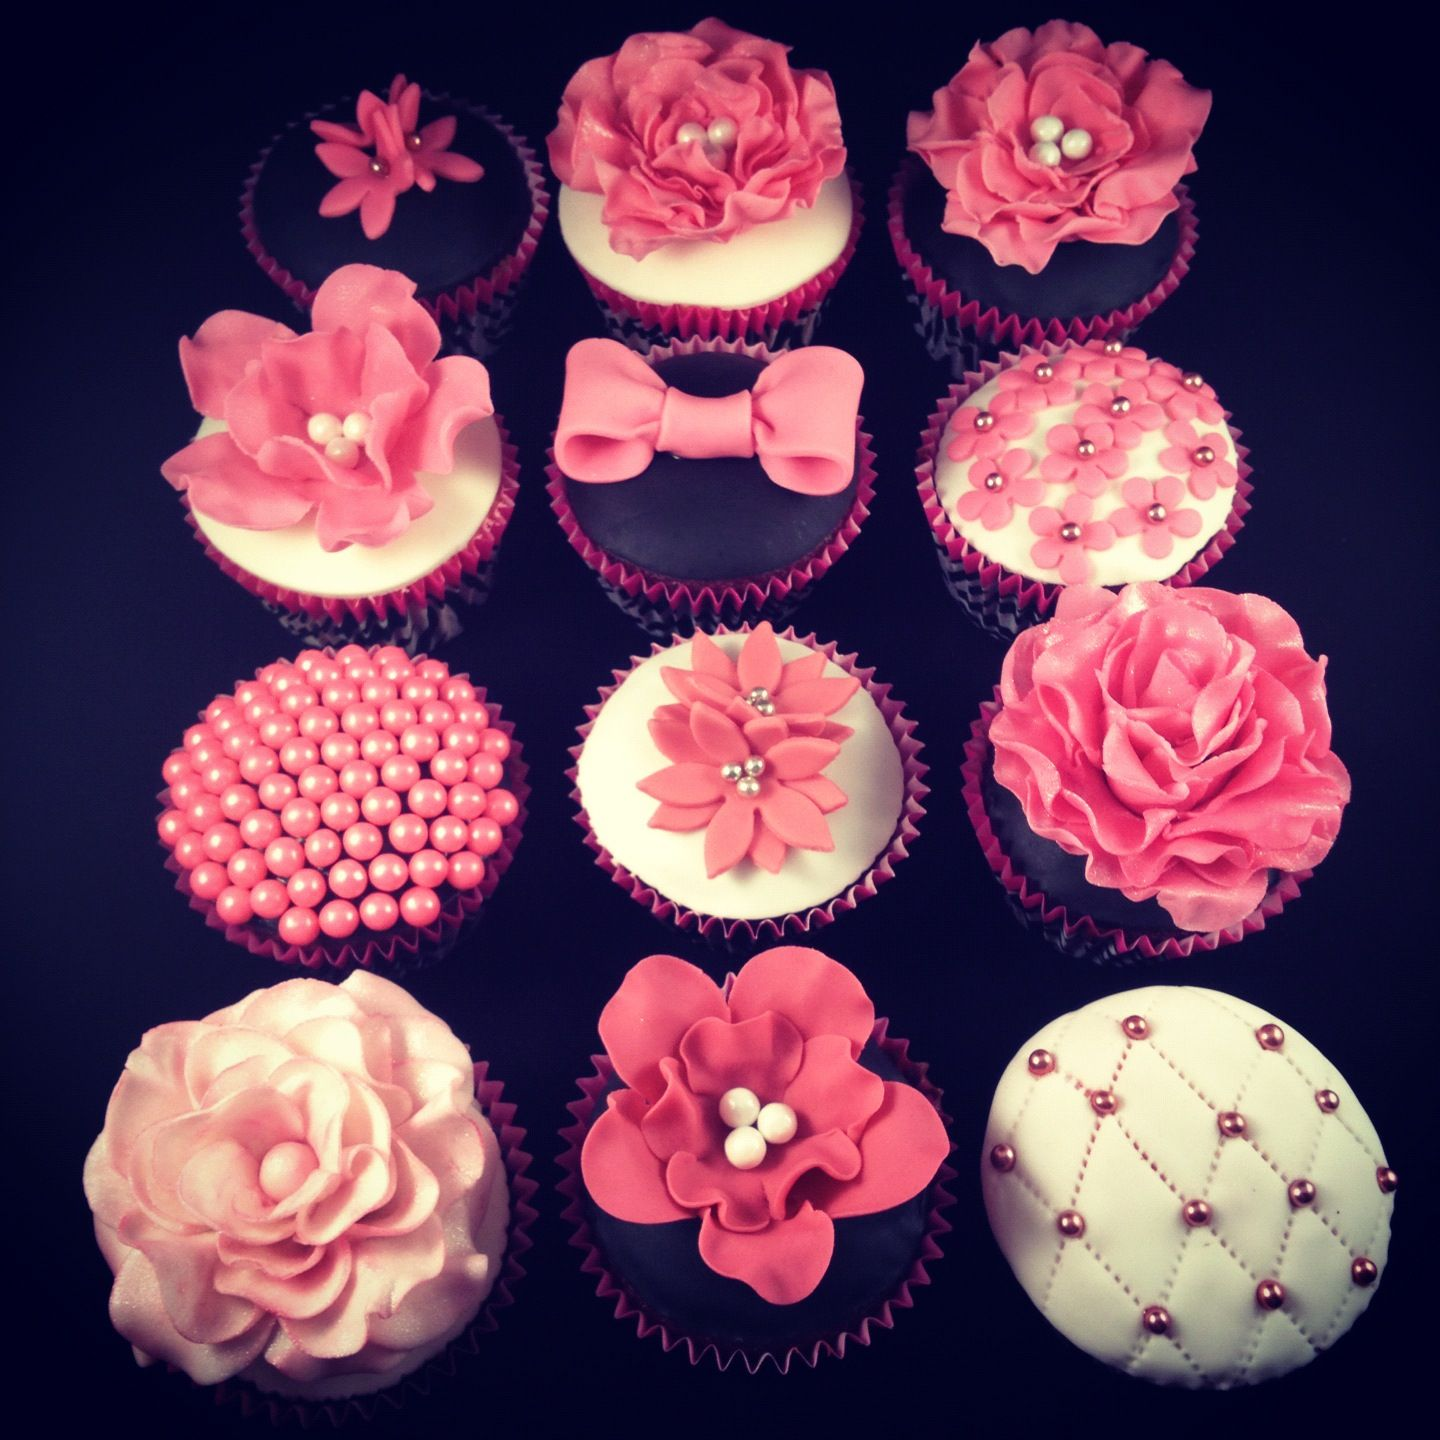 Speciality Cupcakes by @jeanniehh | Cupcakes | Pinterest